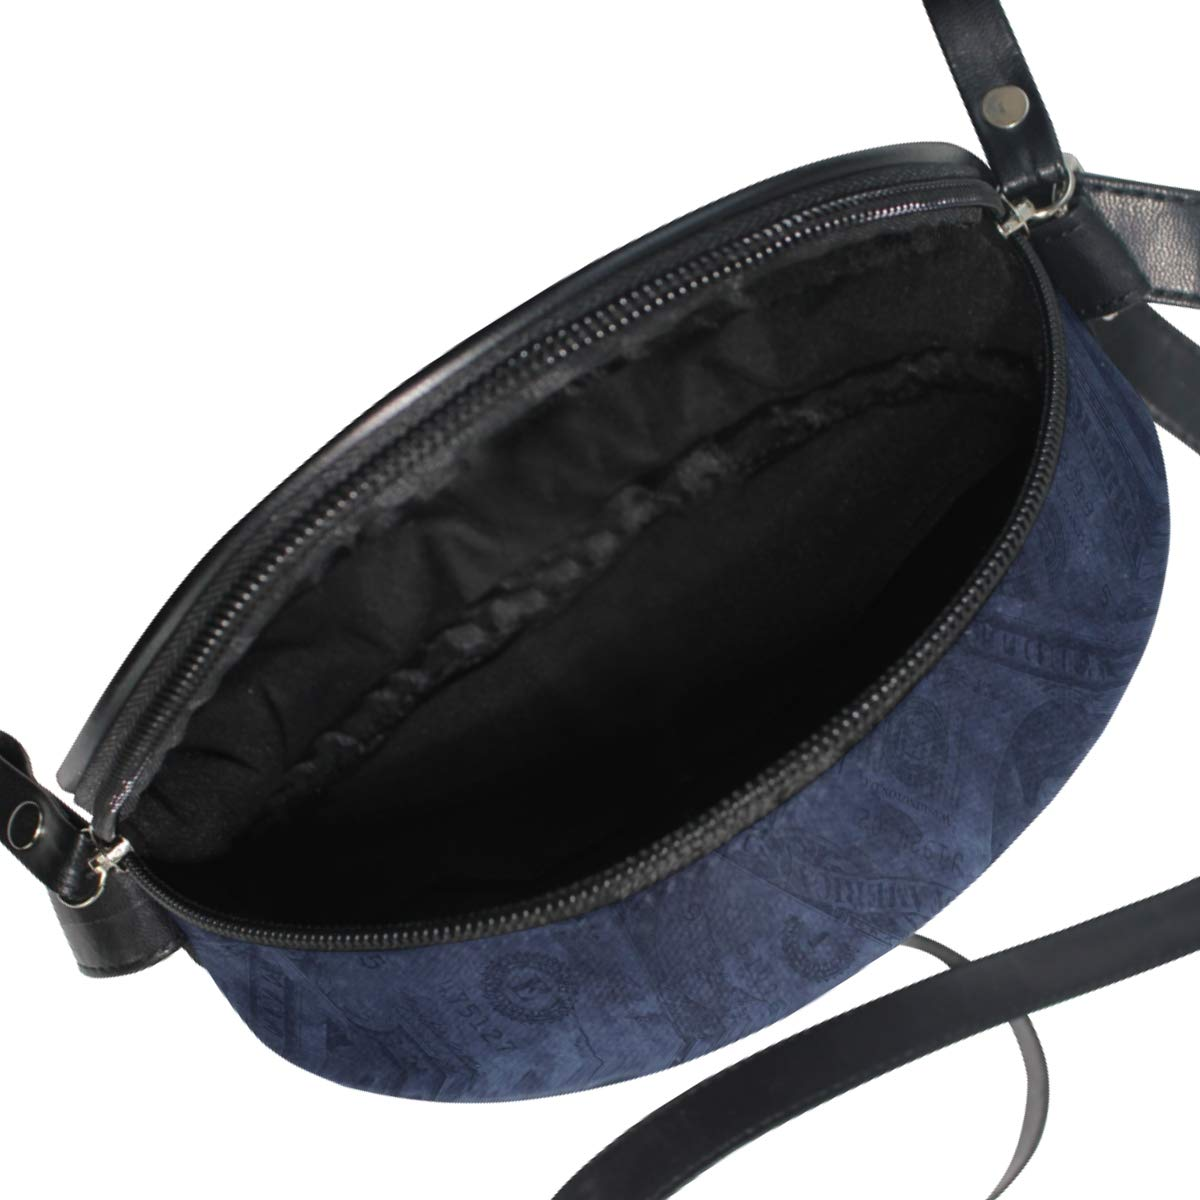 Retro Style US Dollars Small Round Canvas Crossbody Messenger Bags for Women